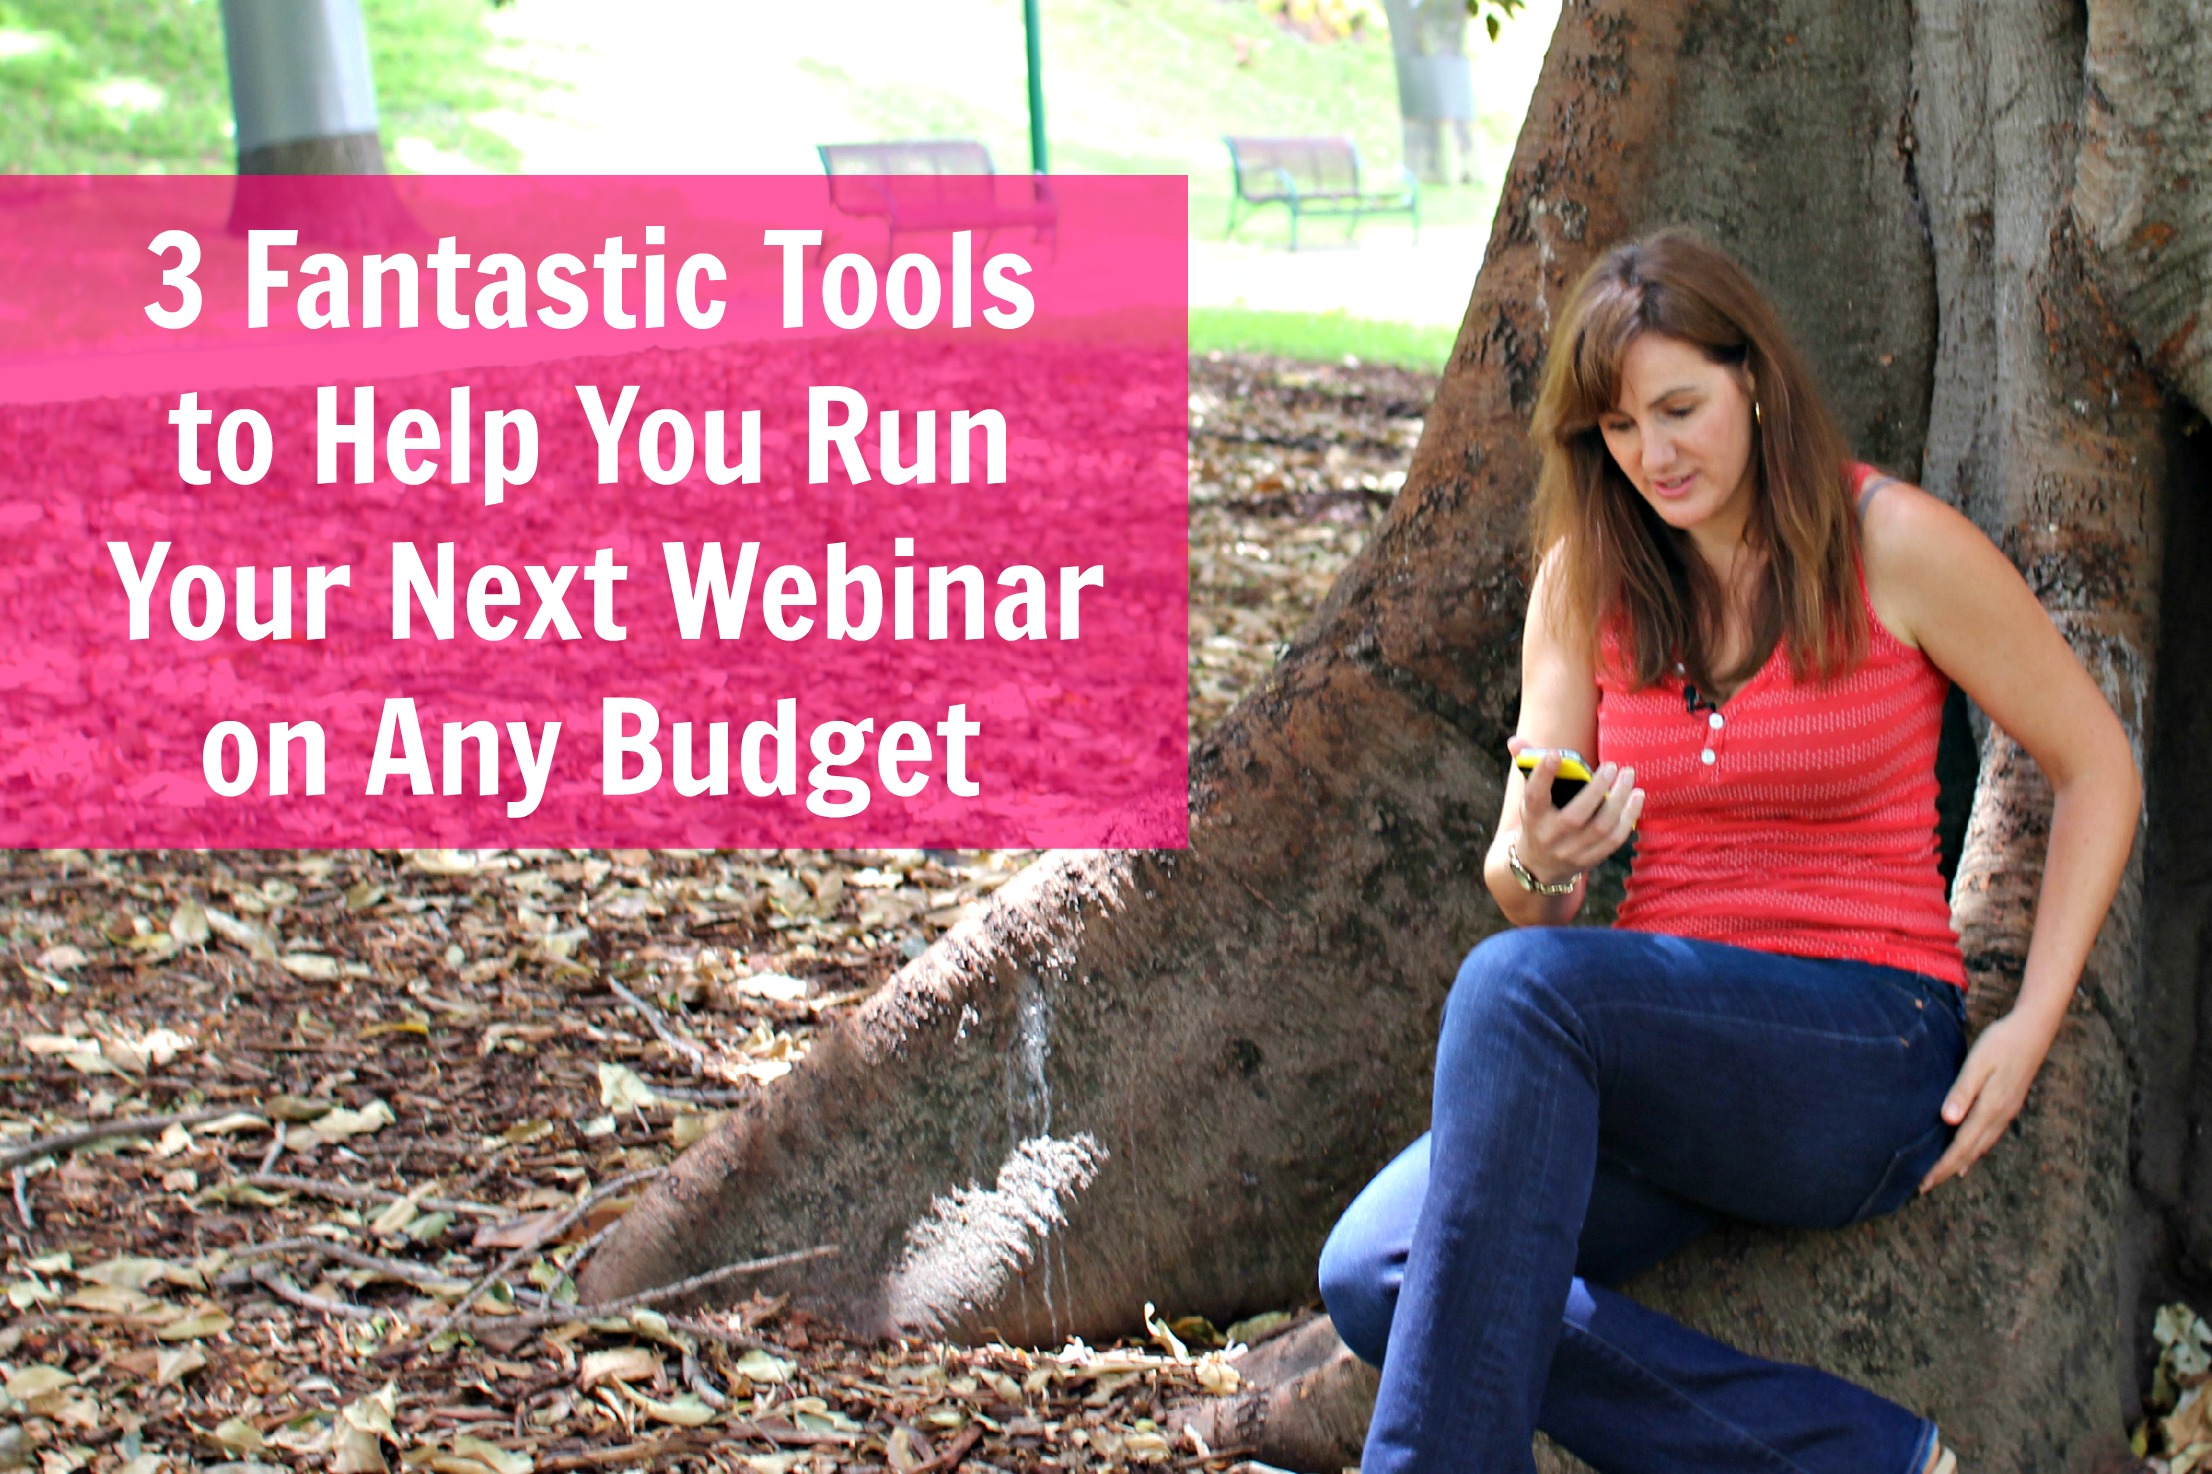 3 Fantastic Tools to Help You Run Your Next Webinar on Any Budget